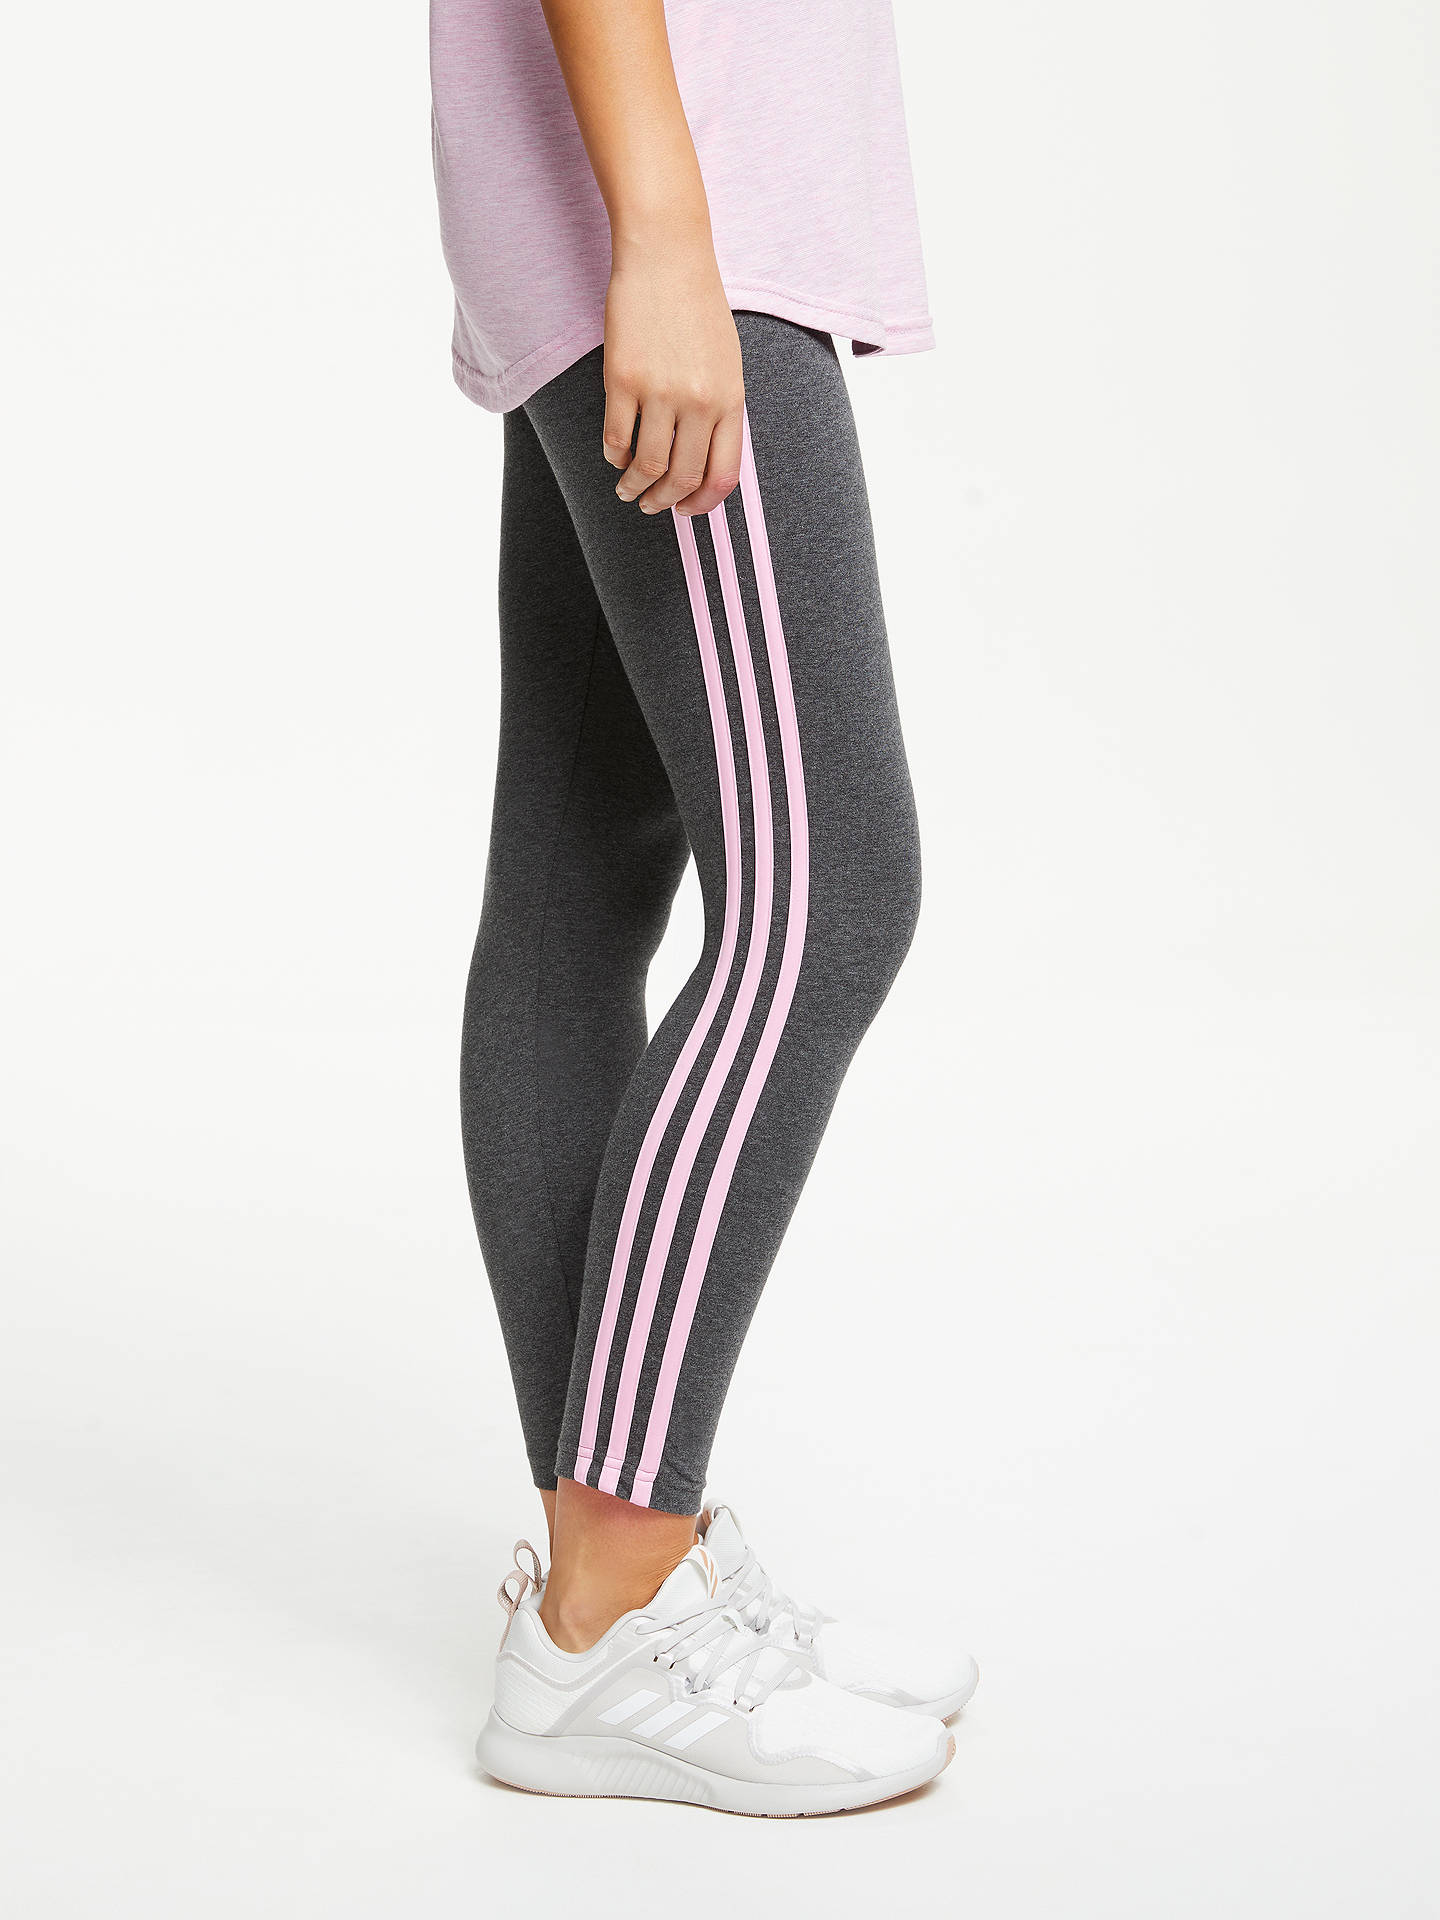 adidas leggings dark grey